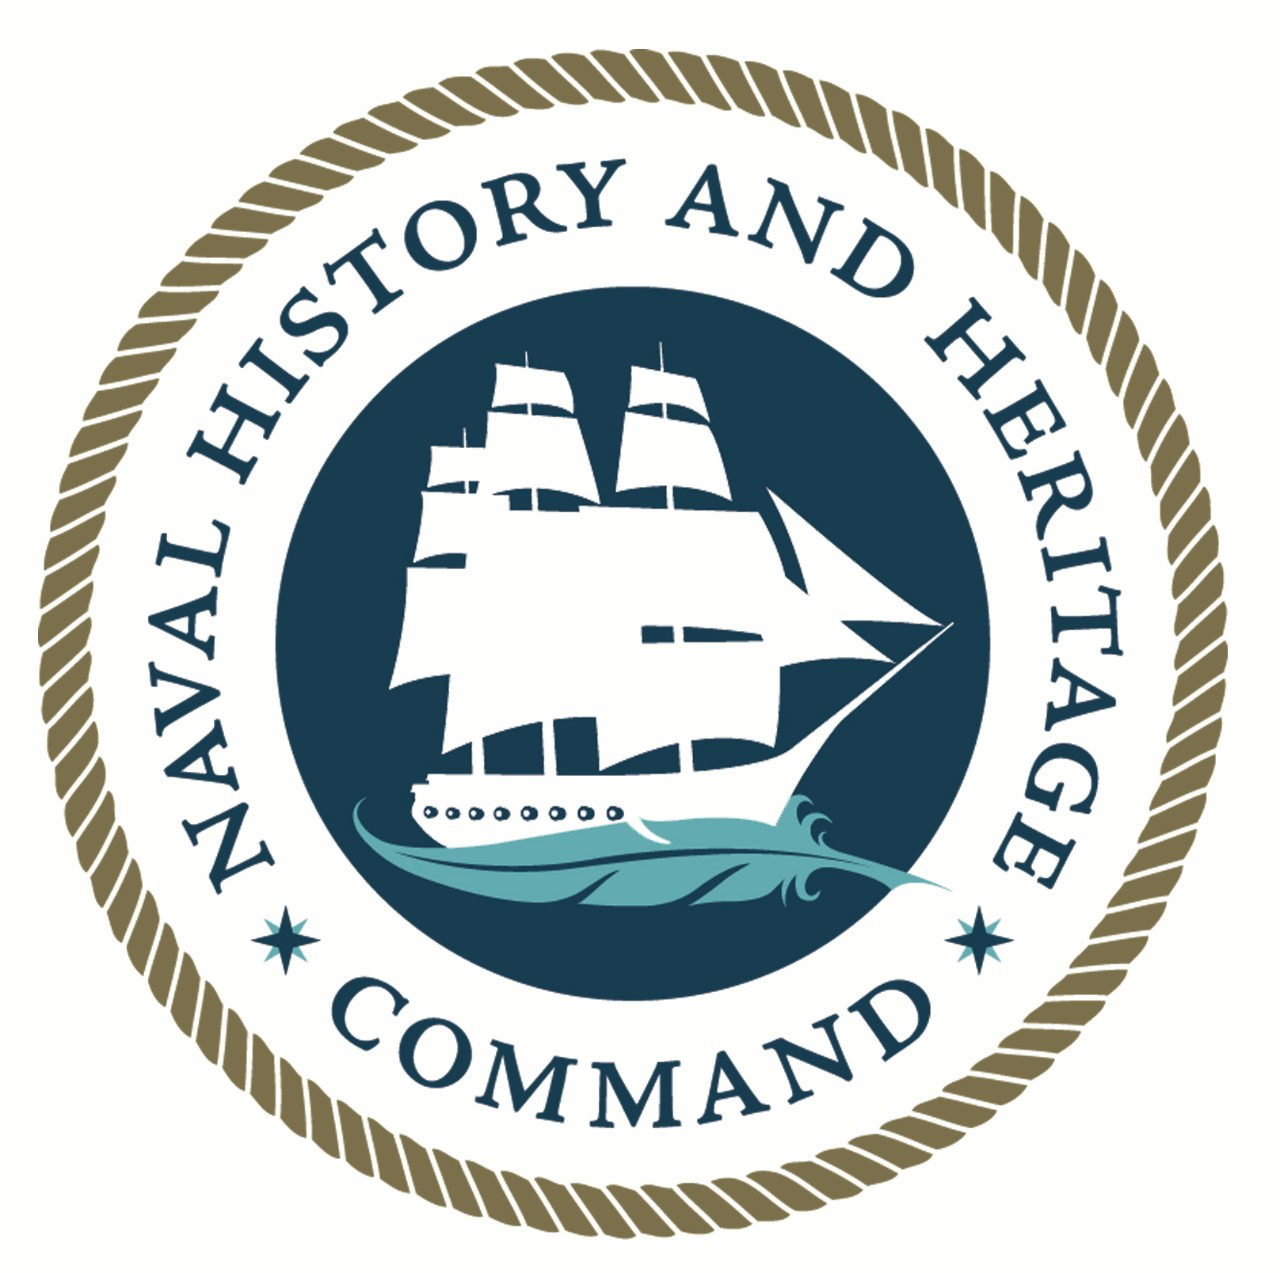 The official Naval History and Heritage Command logo.